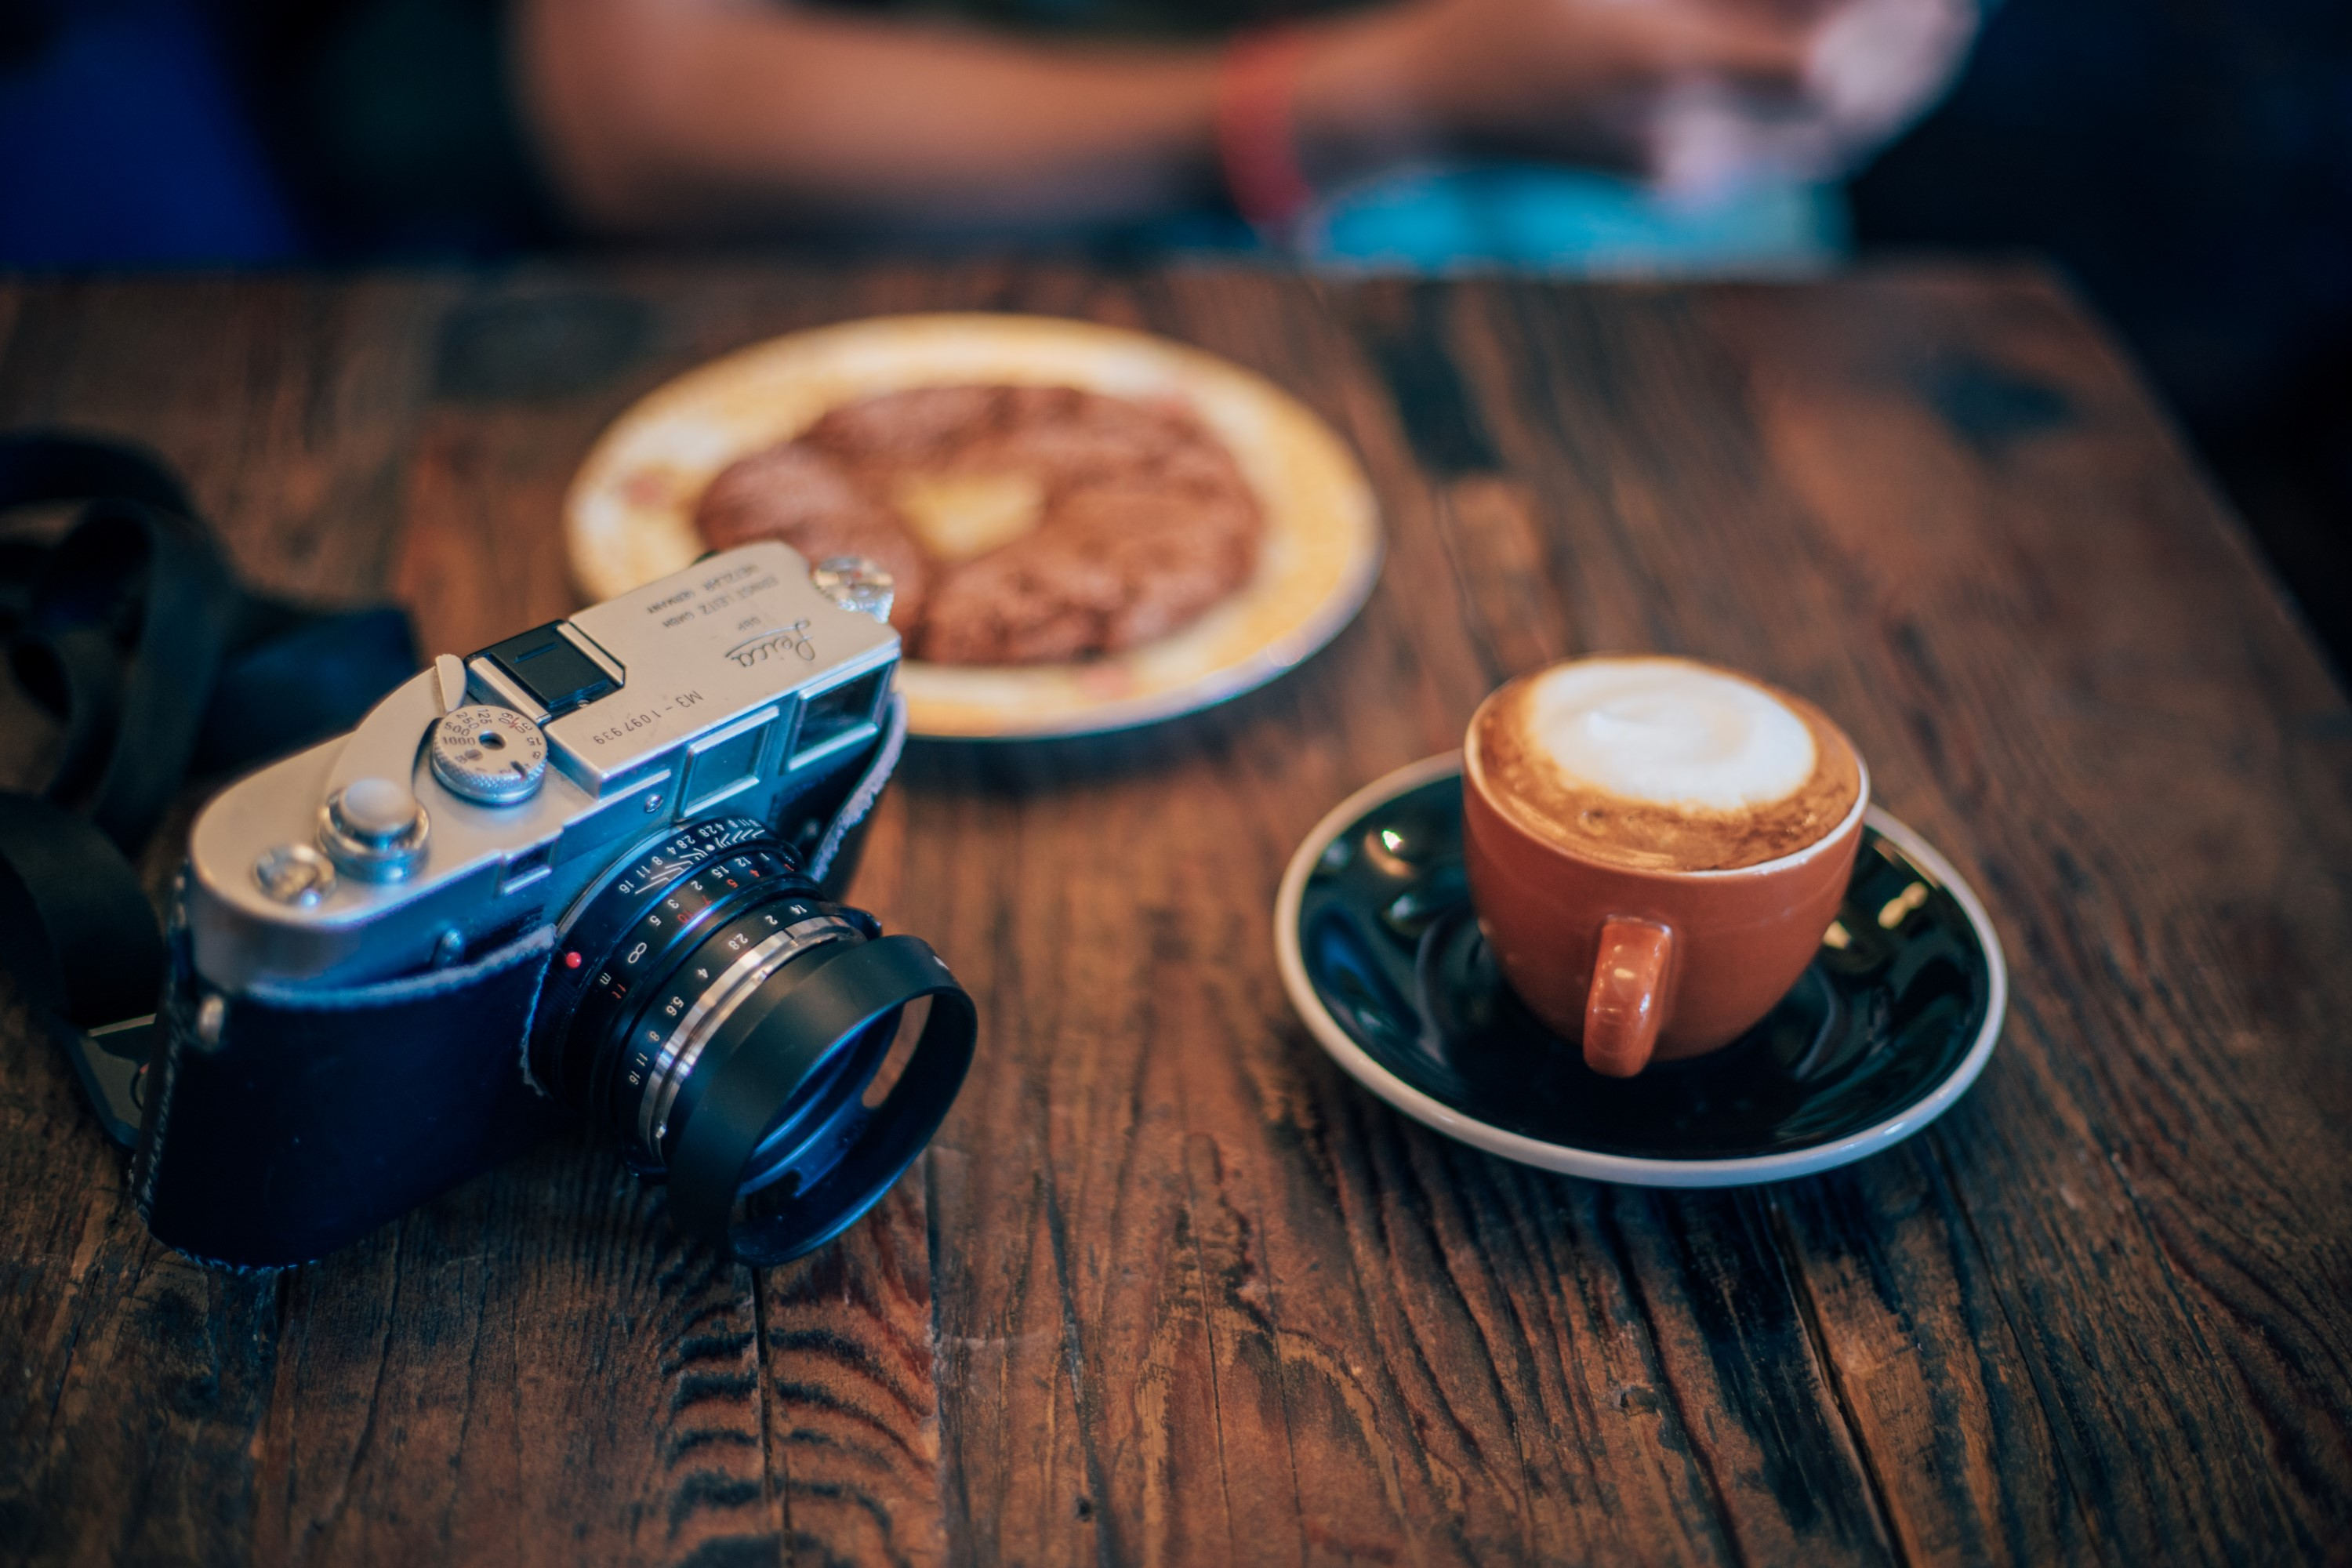 Latte and Leica